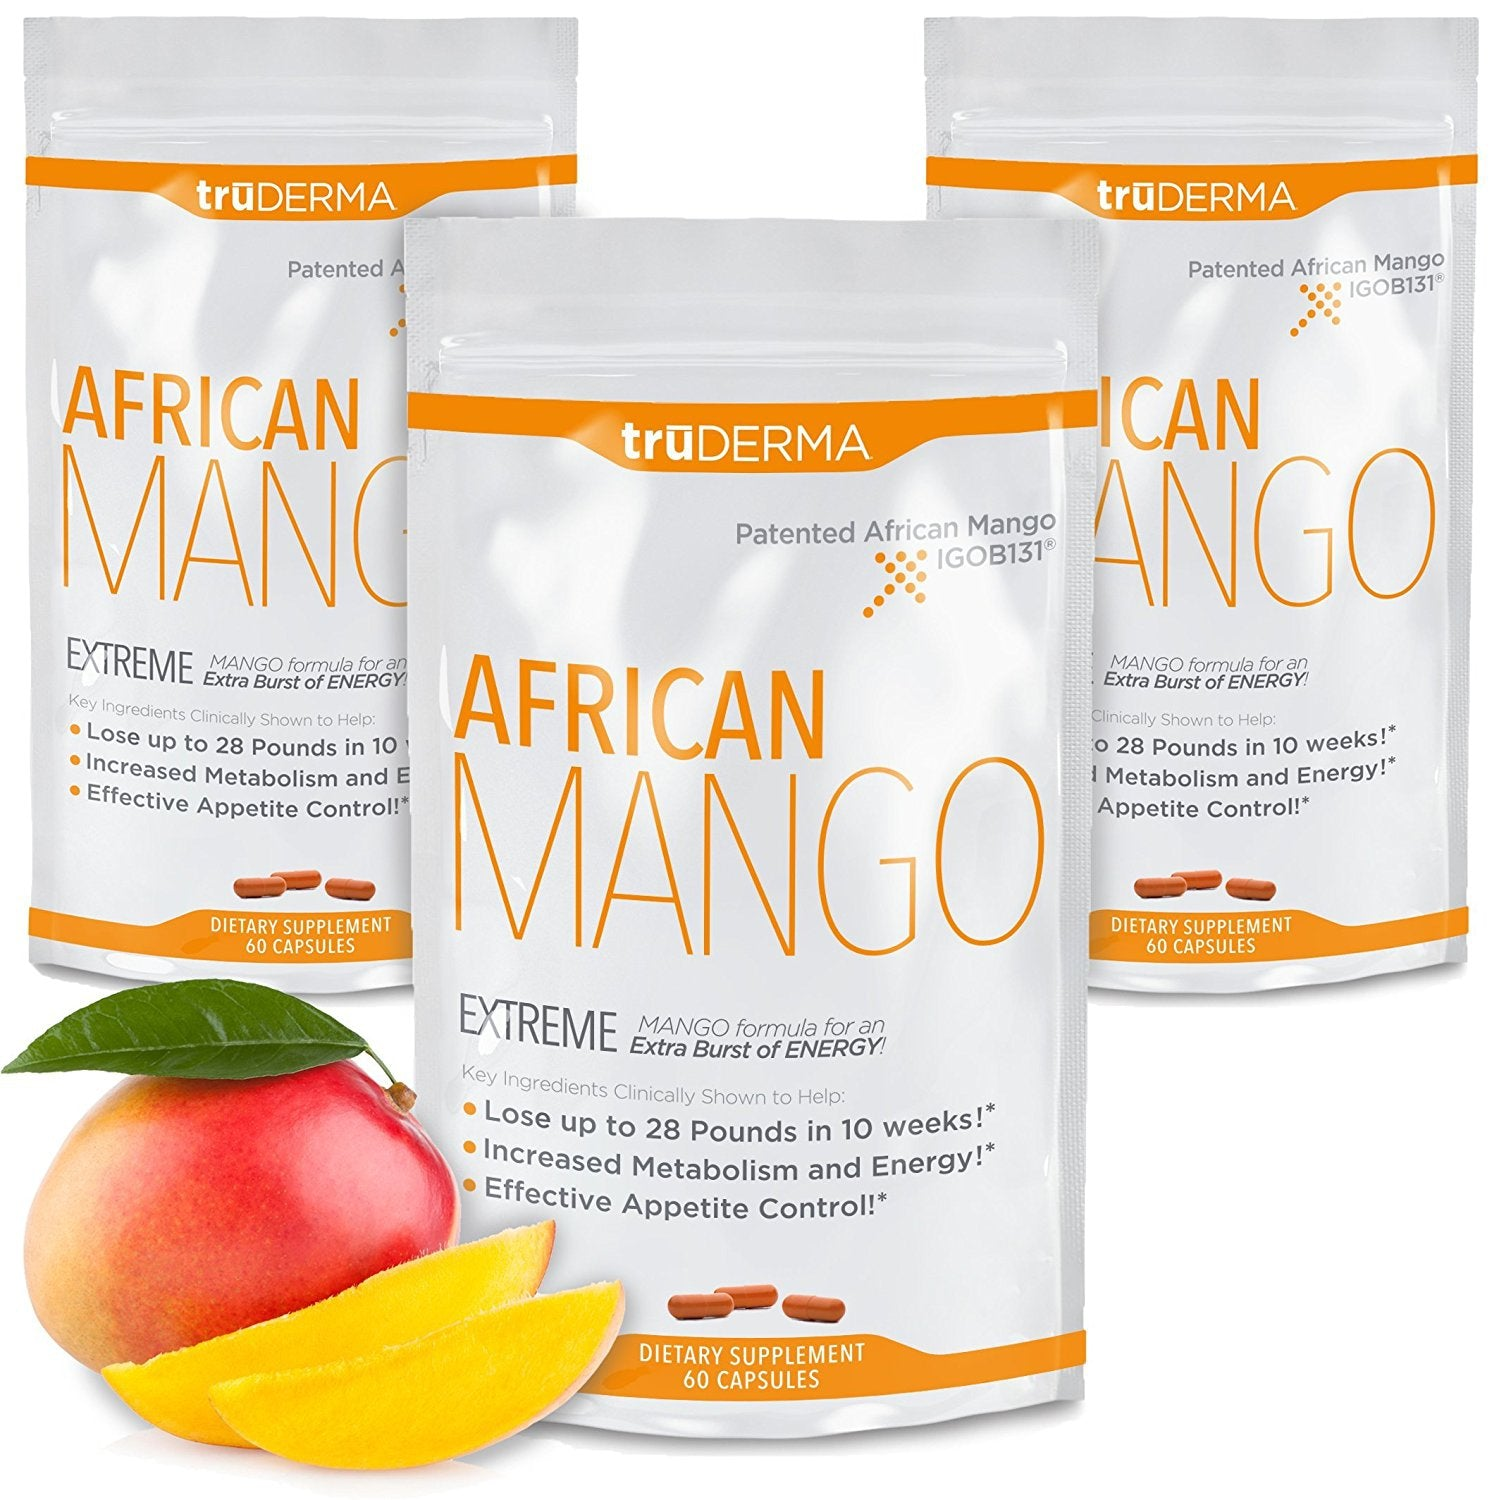 truDERMA Extreme African Mango Extract: Advanced Weight Loss Supplement Plus Pure Irvingia Gabonensis...